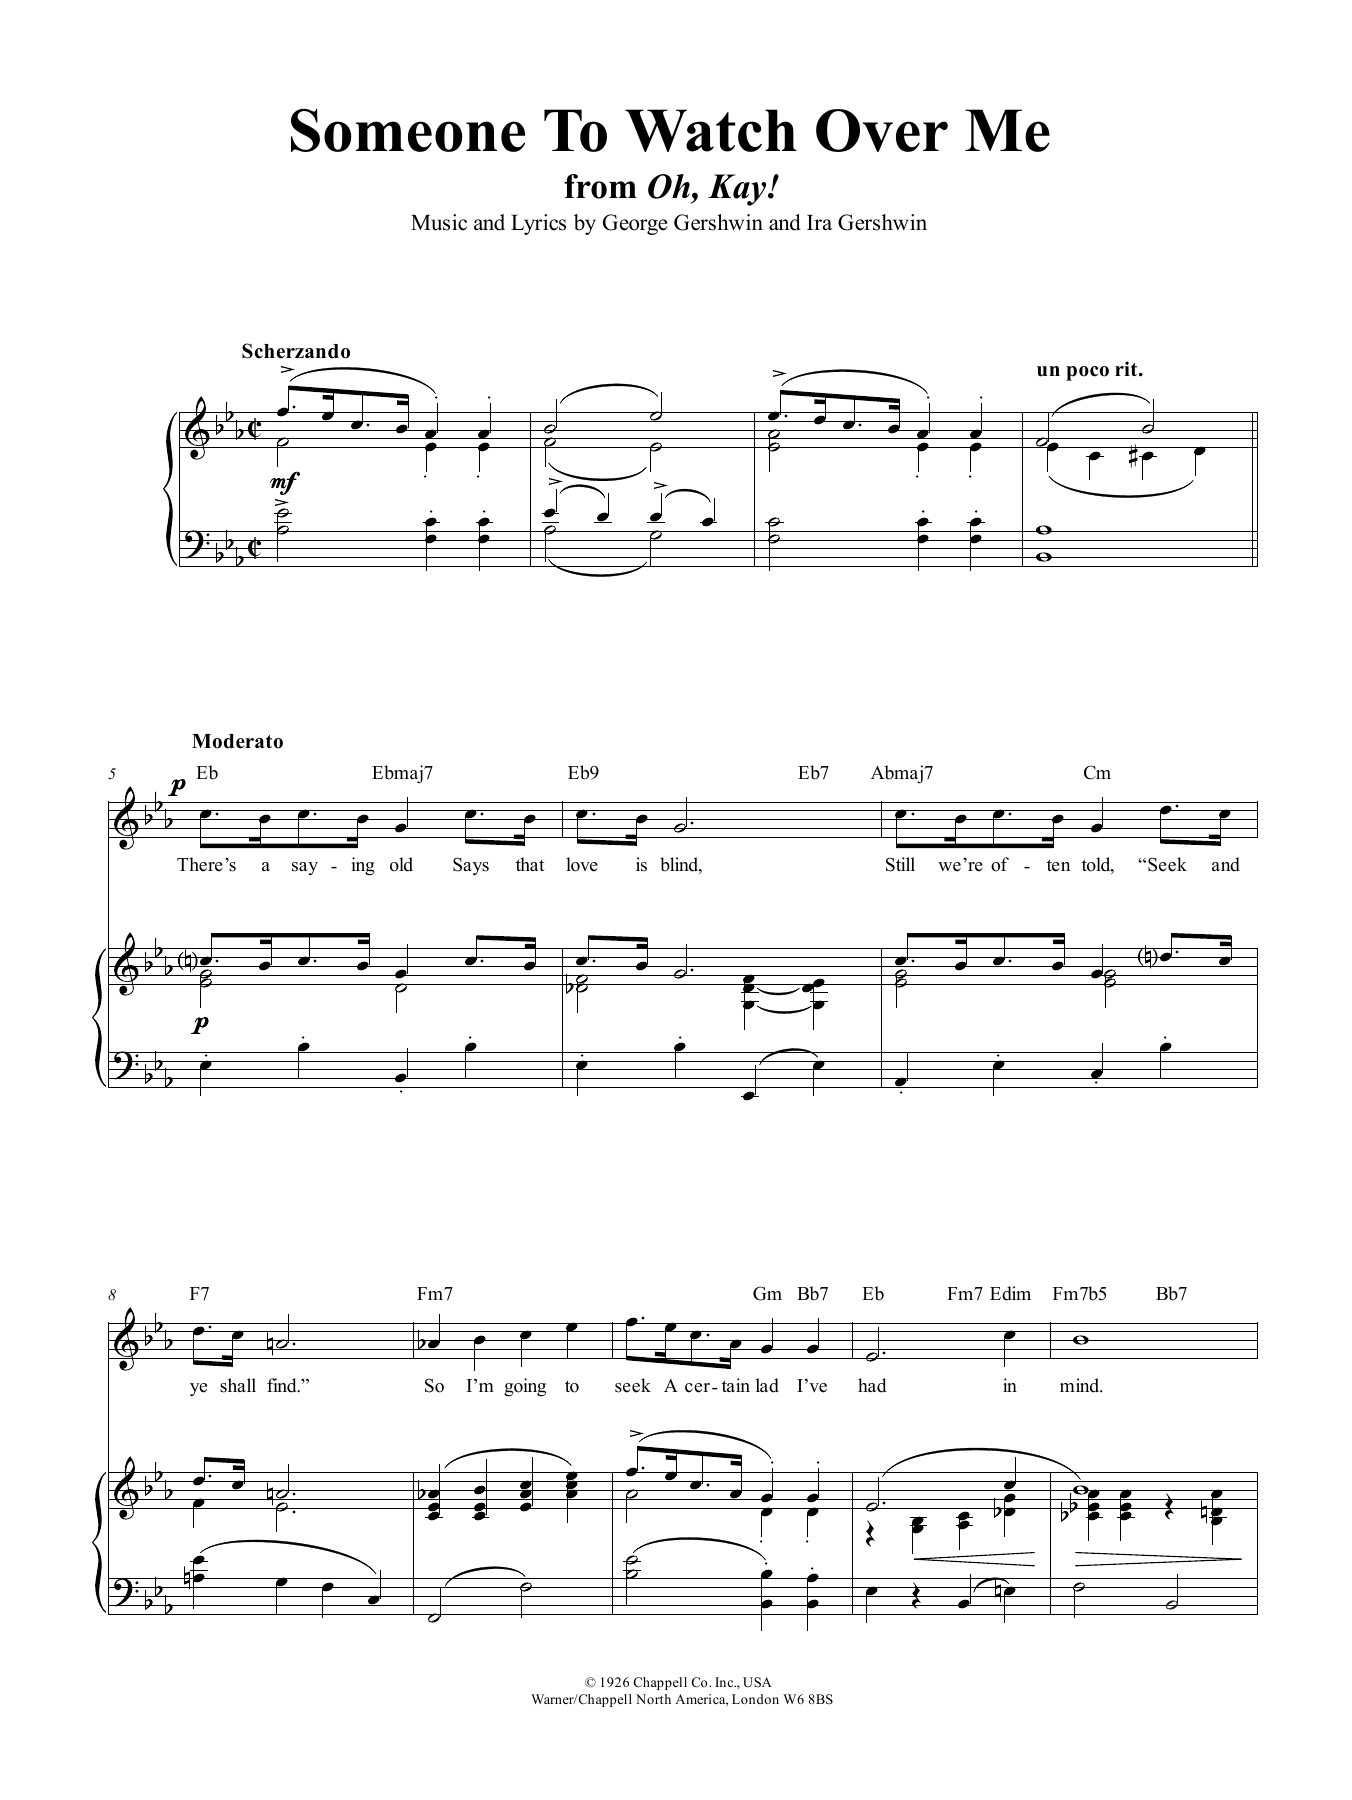 Someone To Watch Over Me (from Oh, Kay!) Sheet Music